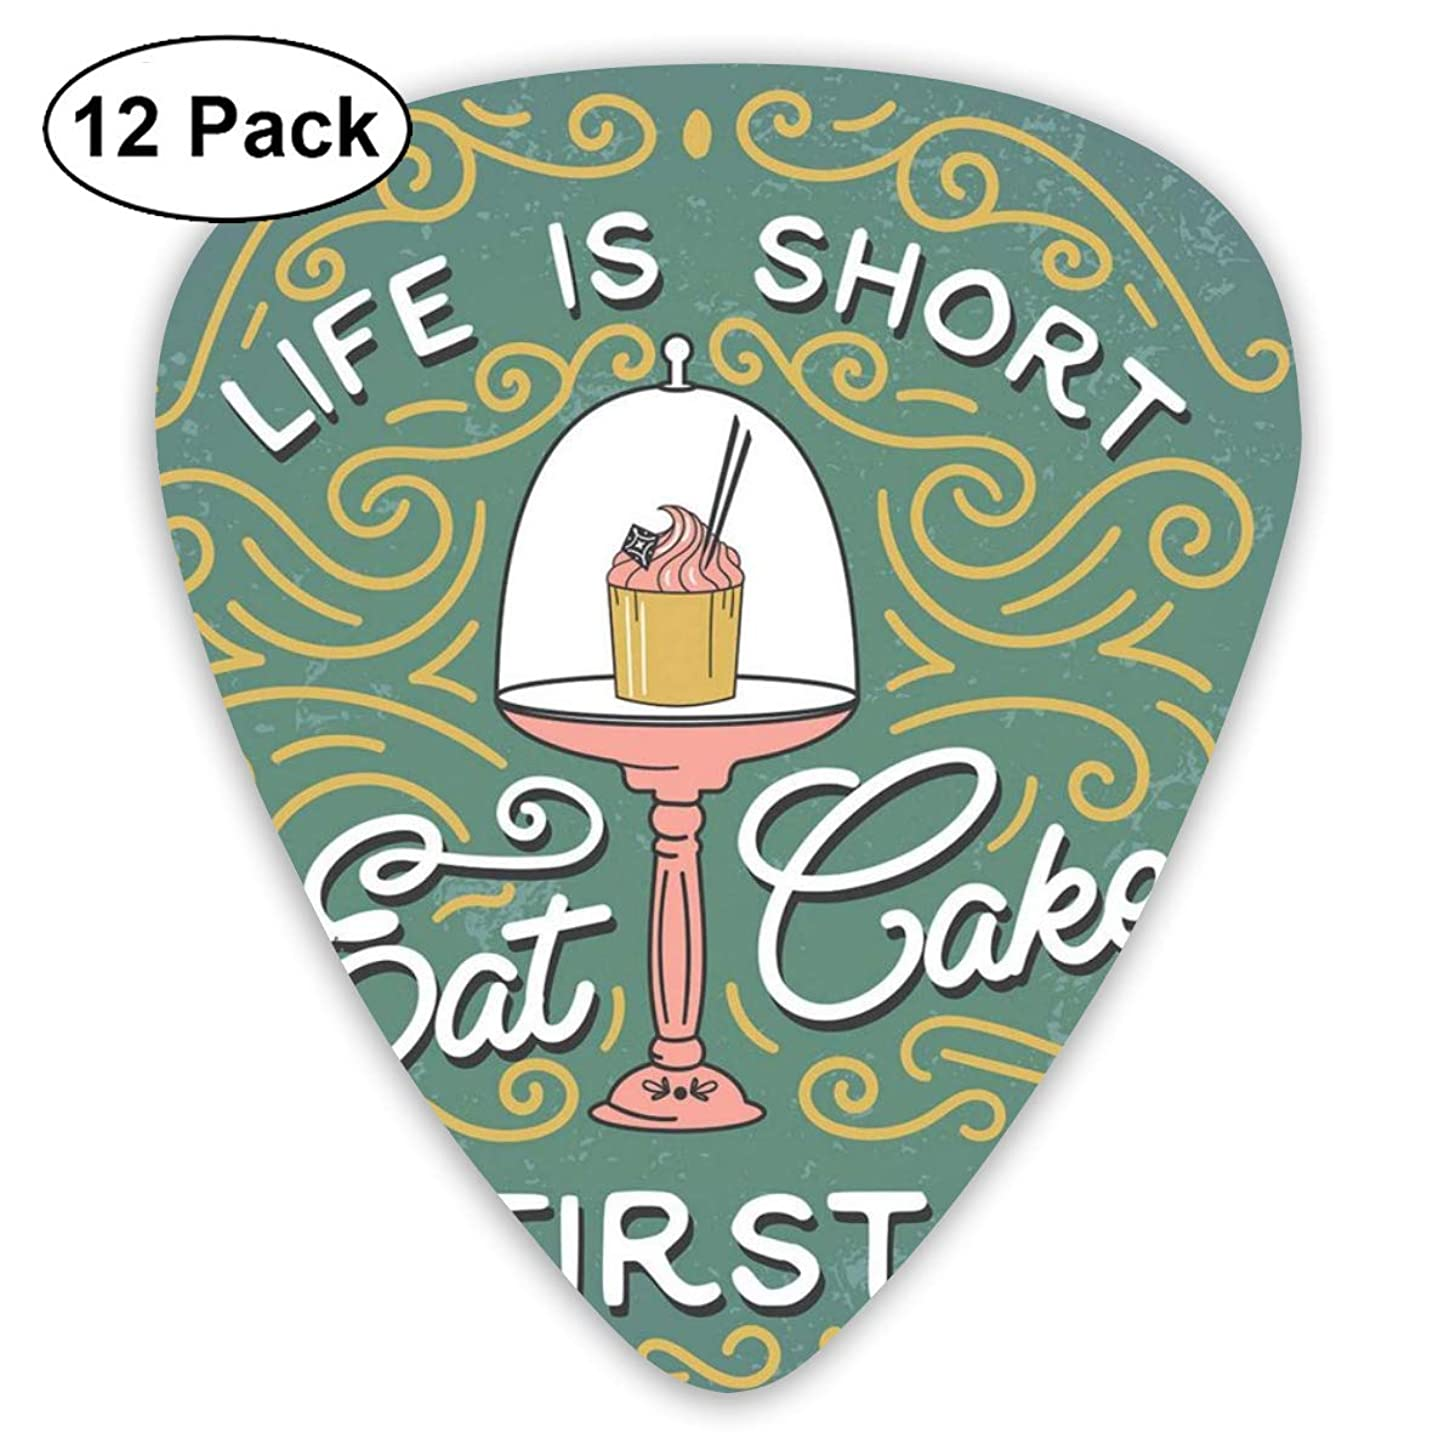 Celluloid Guitar Picks - 12 Pack,Abstract Art Colorful Designs,Vintage Design Life Is Short Eat Cake First Lettering With Cute Cupcake In Service,For Bass Electric & Acoustic Guitars.